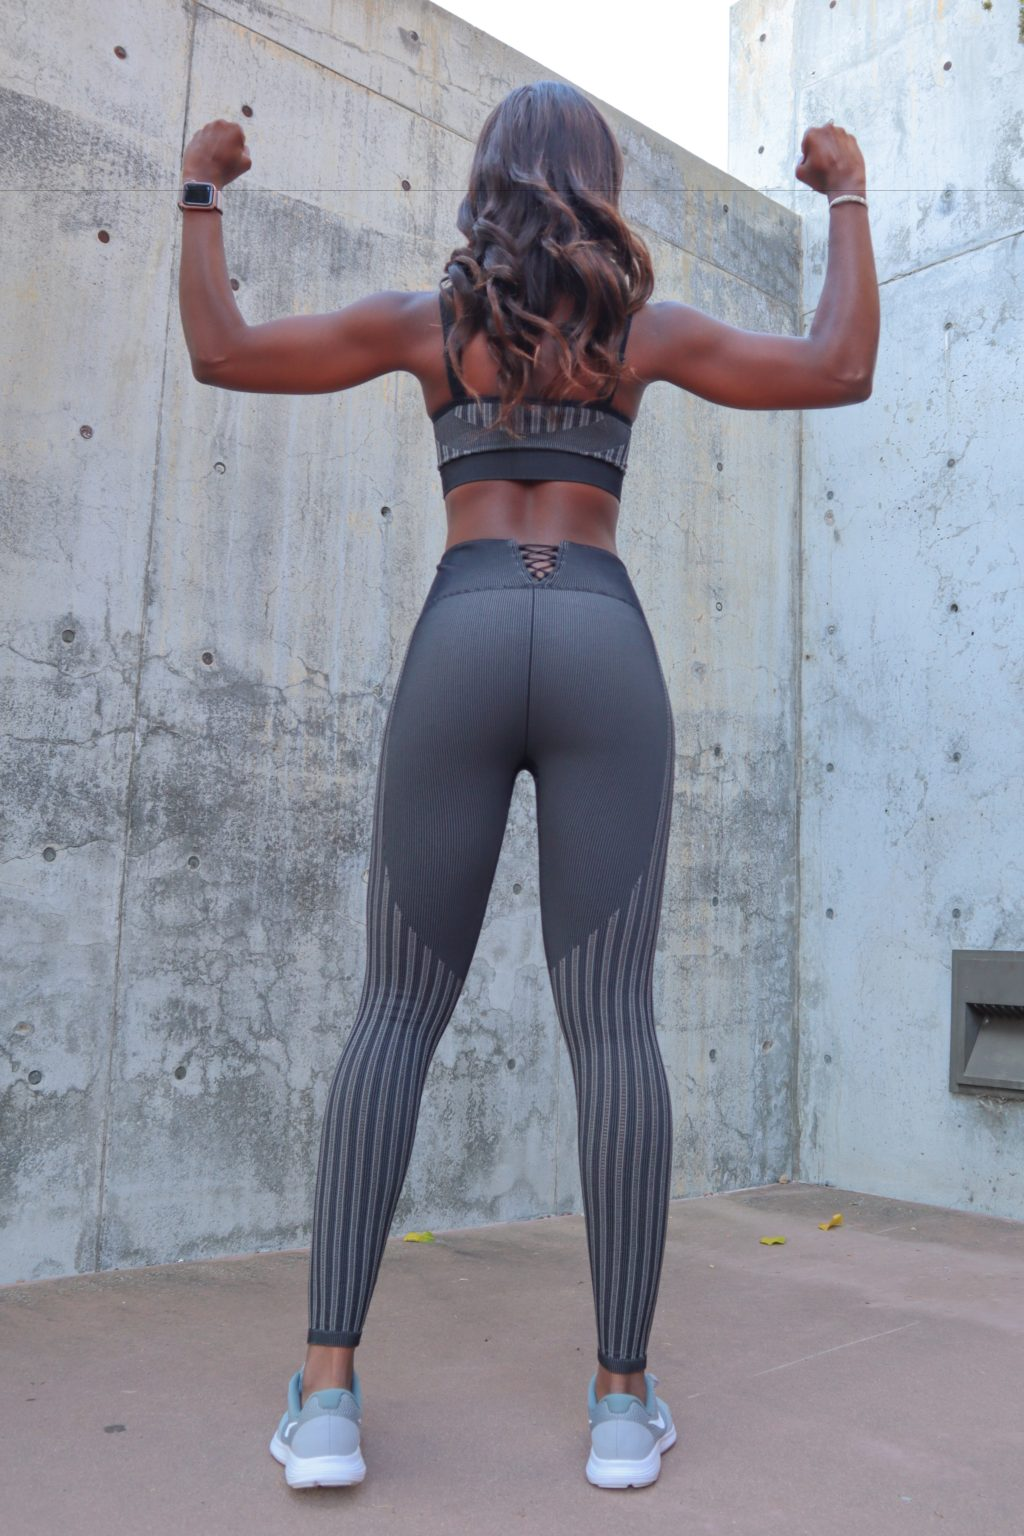 fabletics x Kelly Rowland reviews